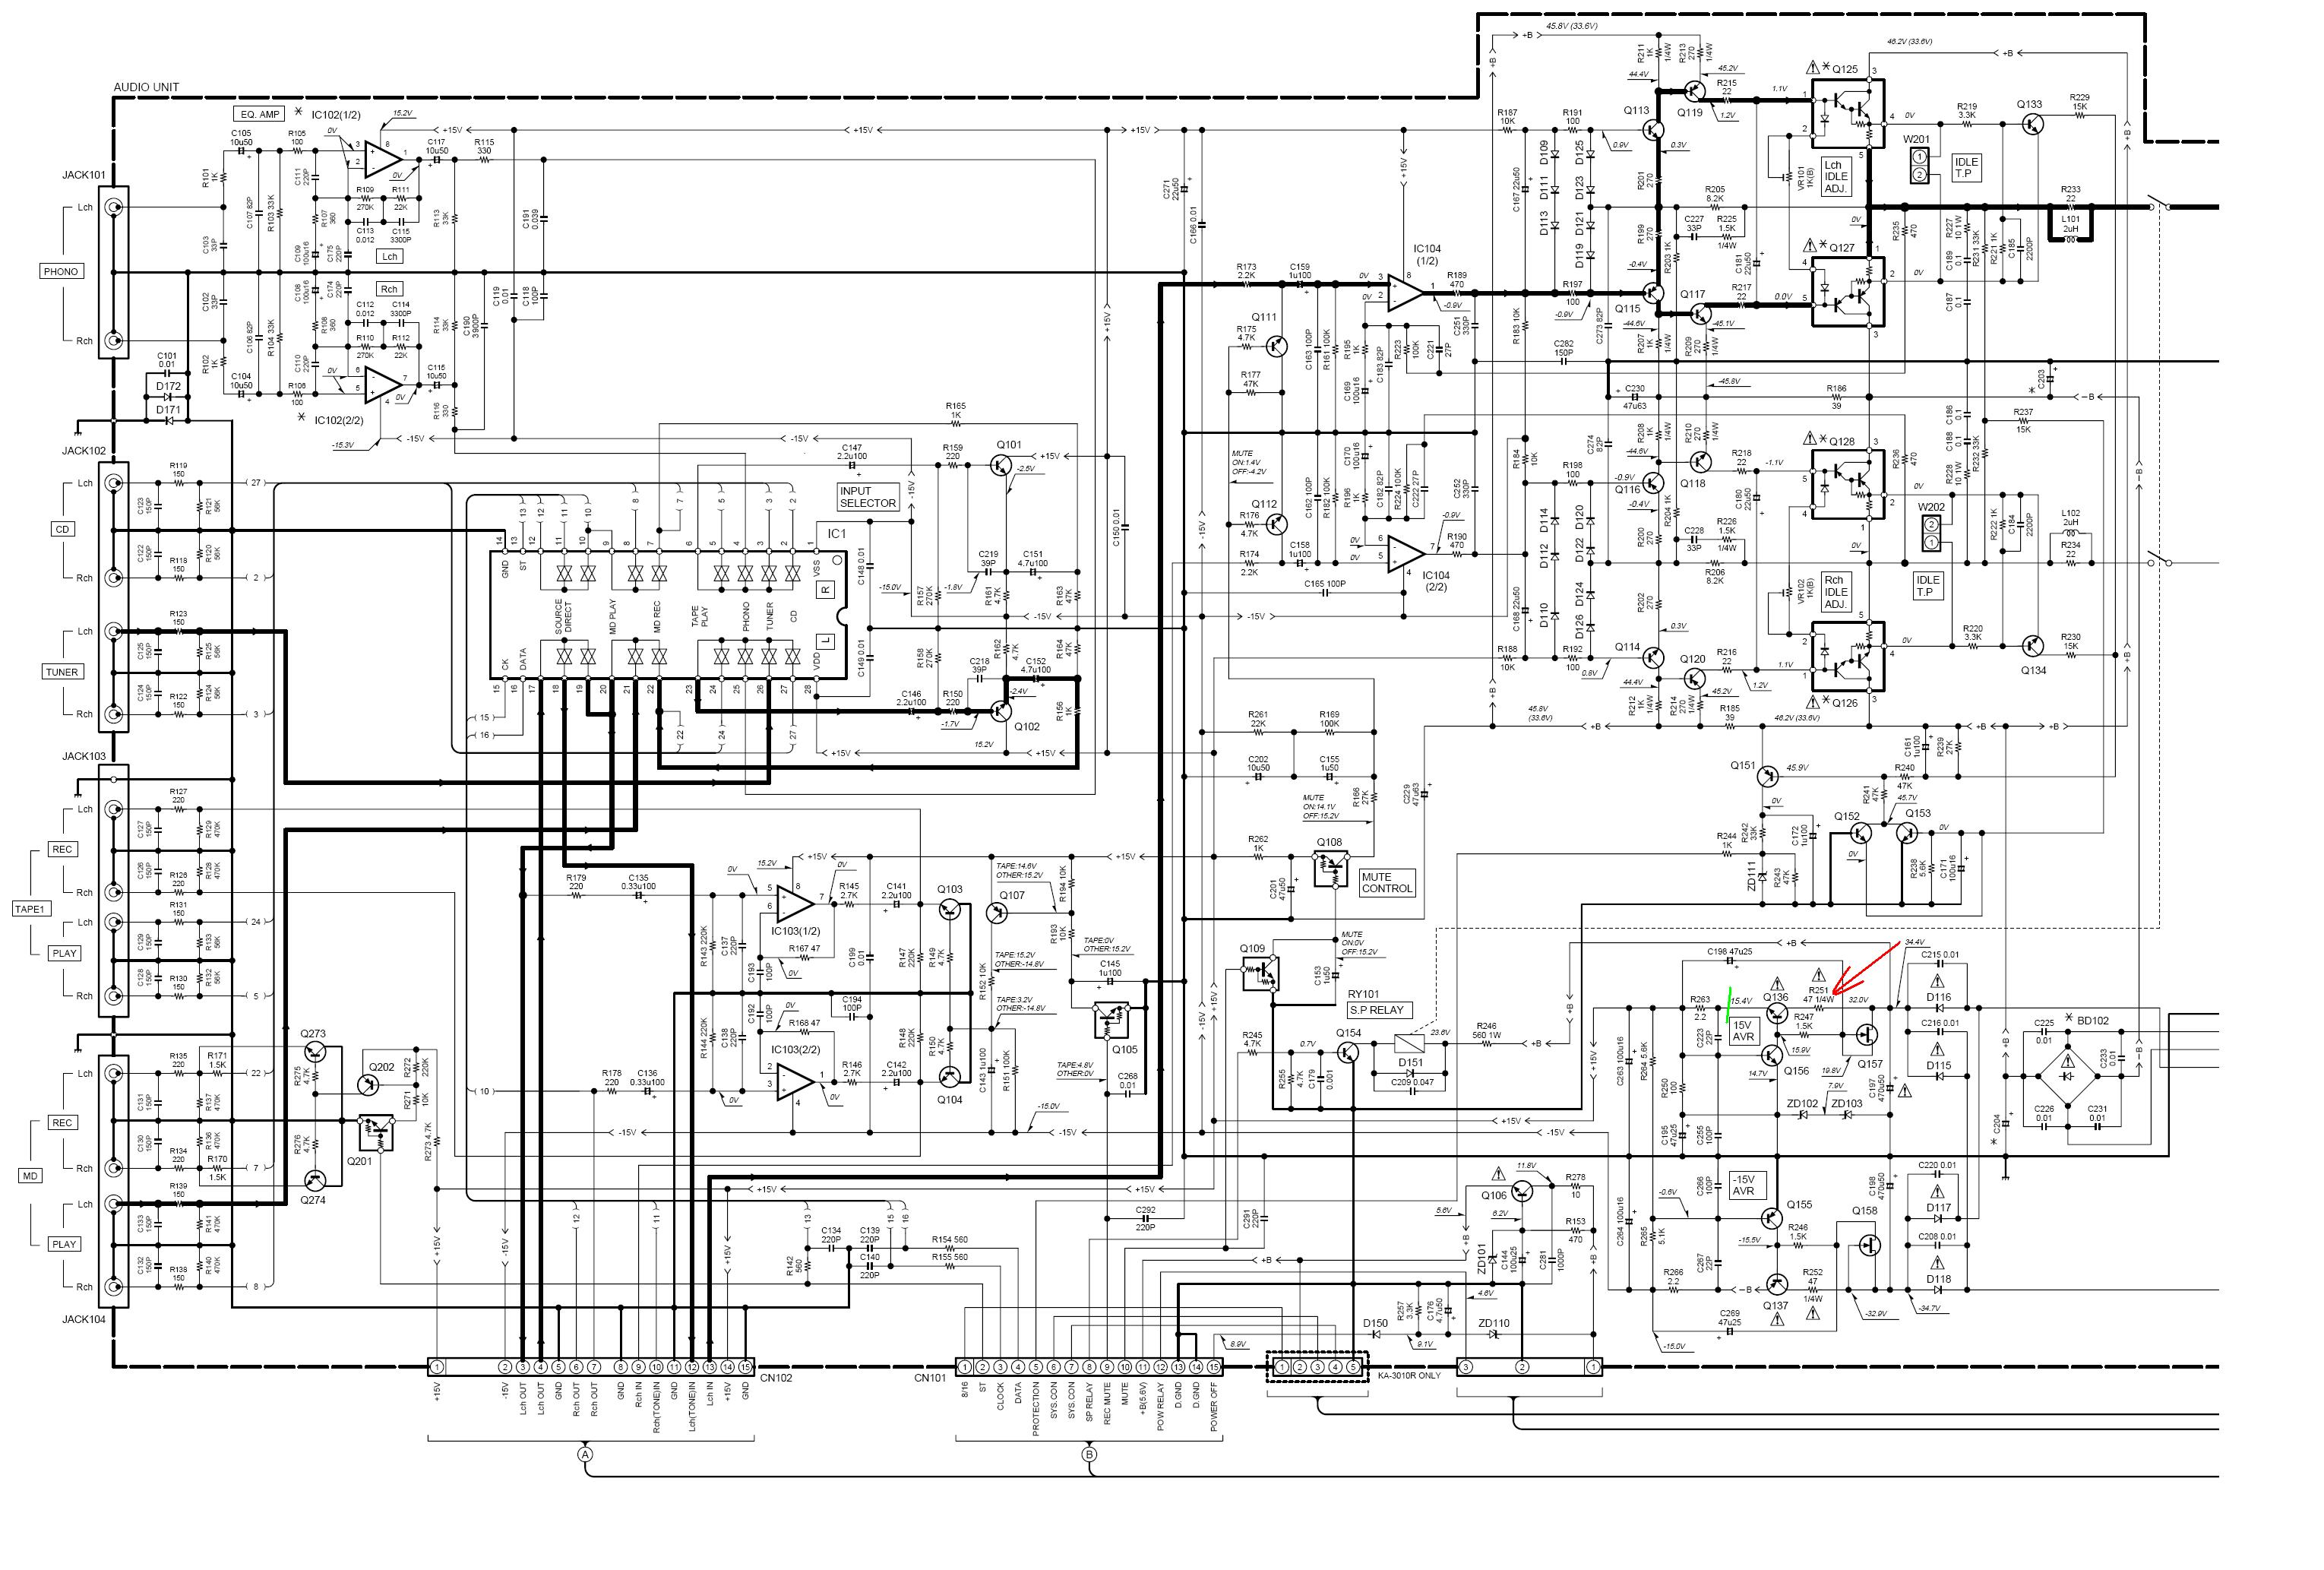 [DIAGRAM_5LK]  CR_0209] Kenwood Mc 42S Mic Wiring Diagram Free Diagram | Kenwood Mc 42s Mic Wiring Diagram |  | Ropye Aidew Illuminateatx Librar Wiring 101